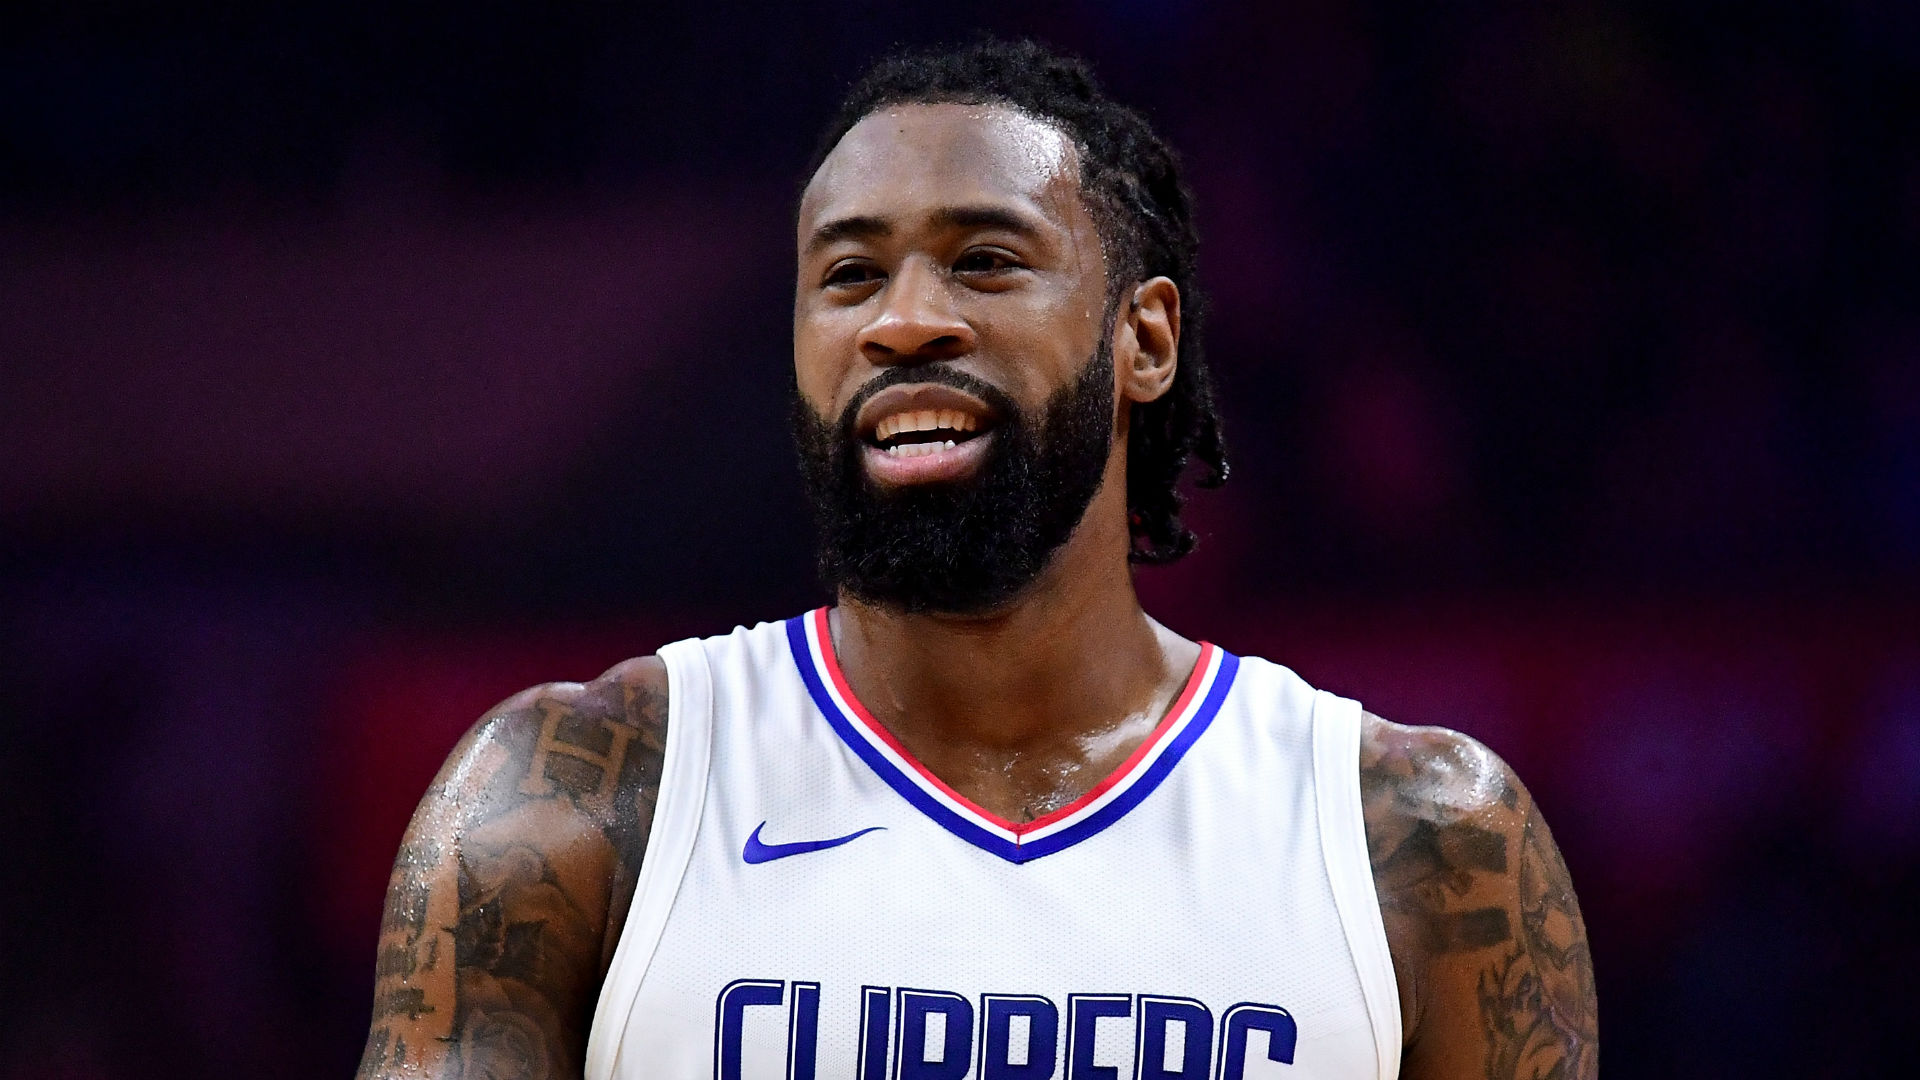 The Dallas Mavericks and DeAndre Jordan verbally agree to deal